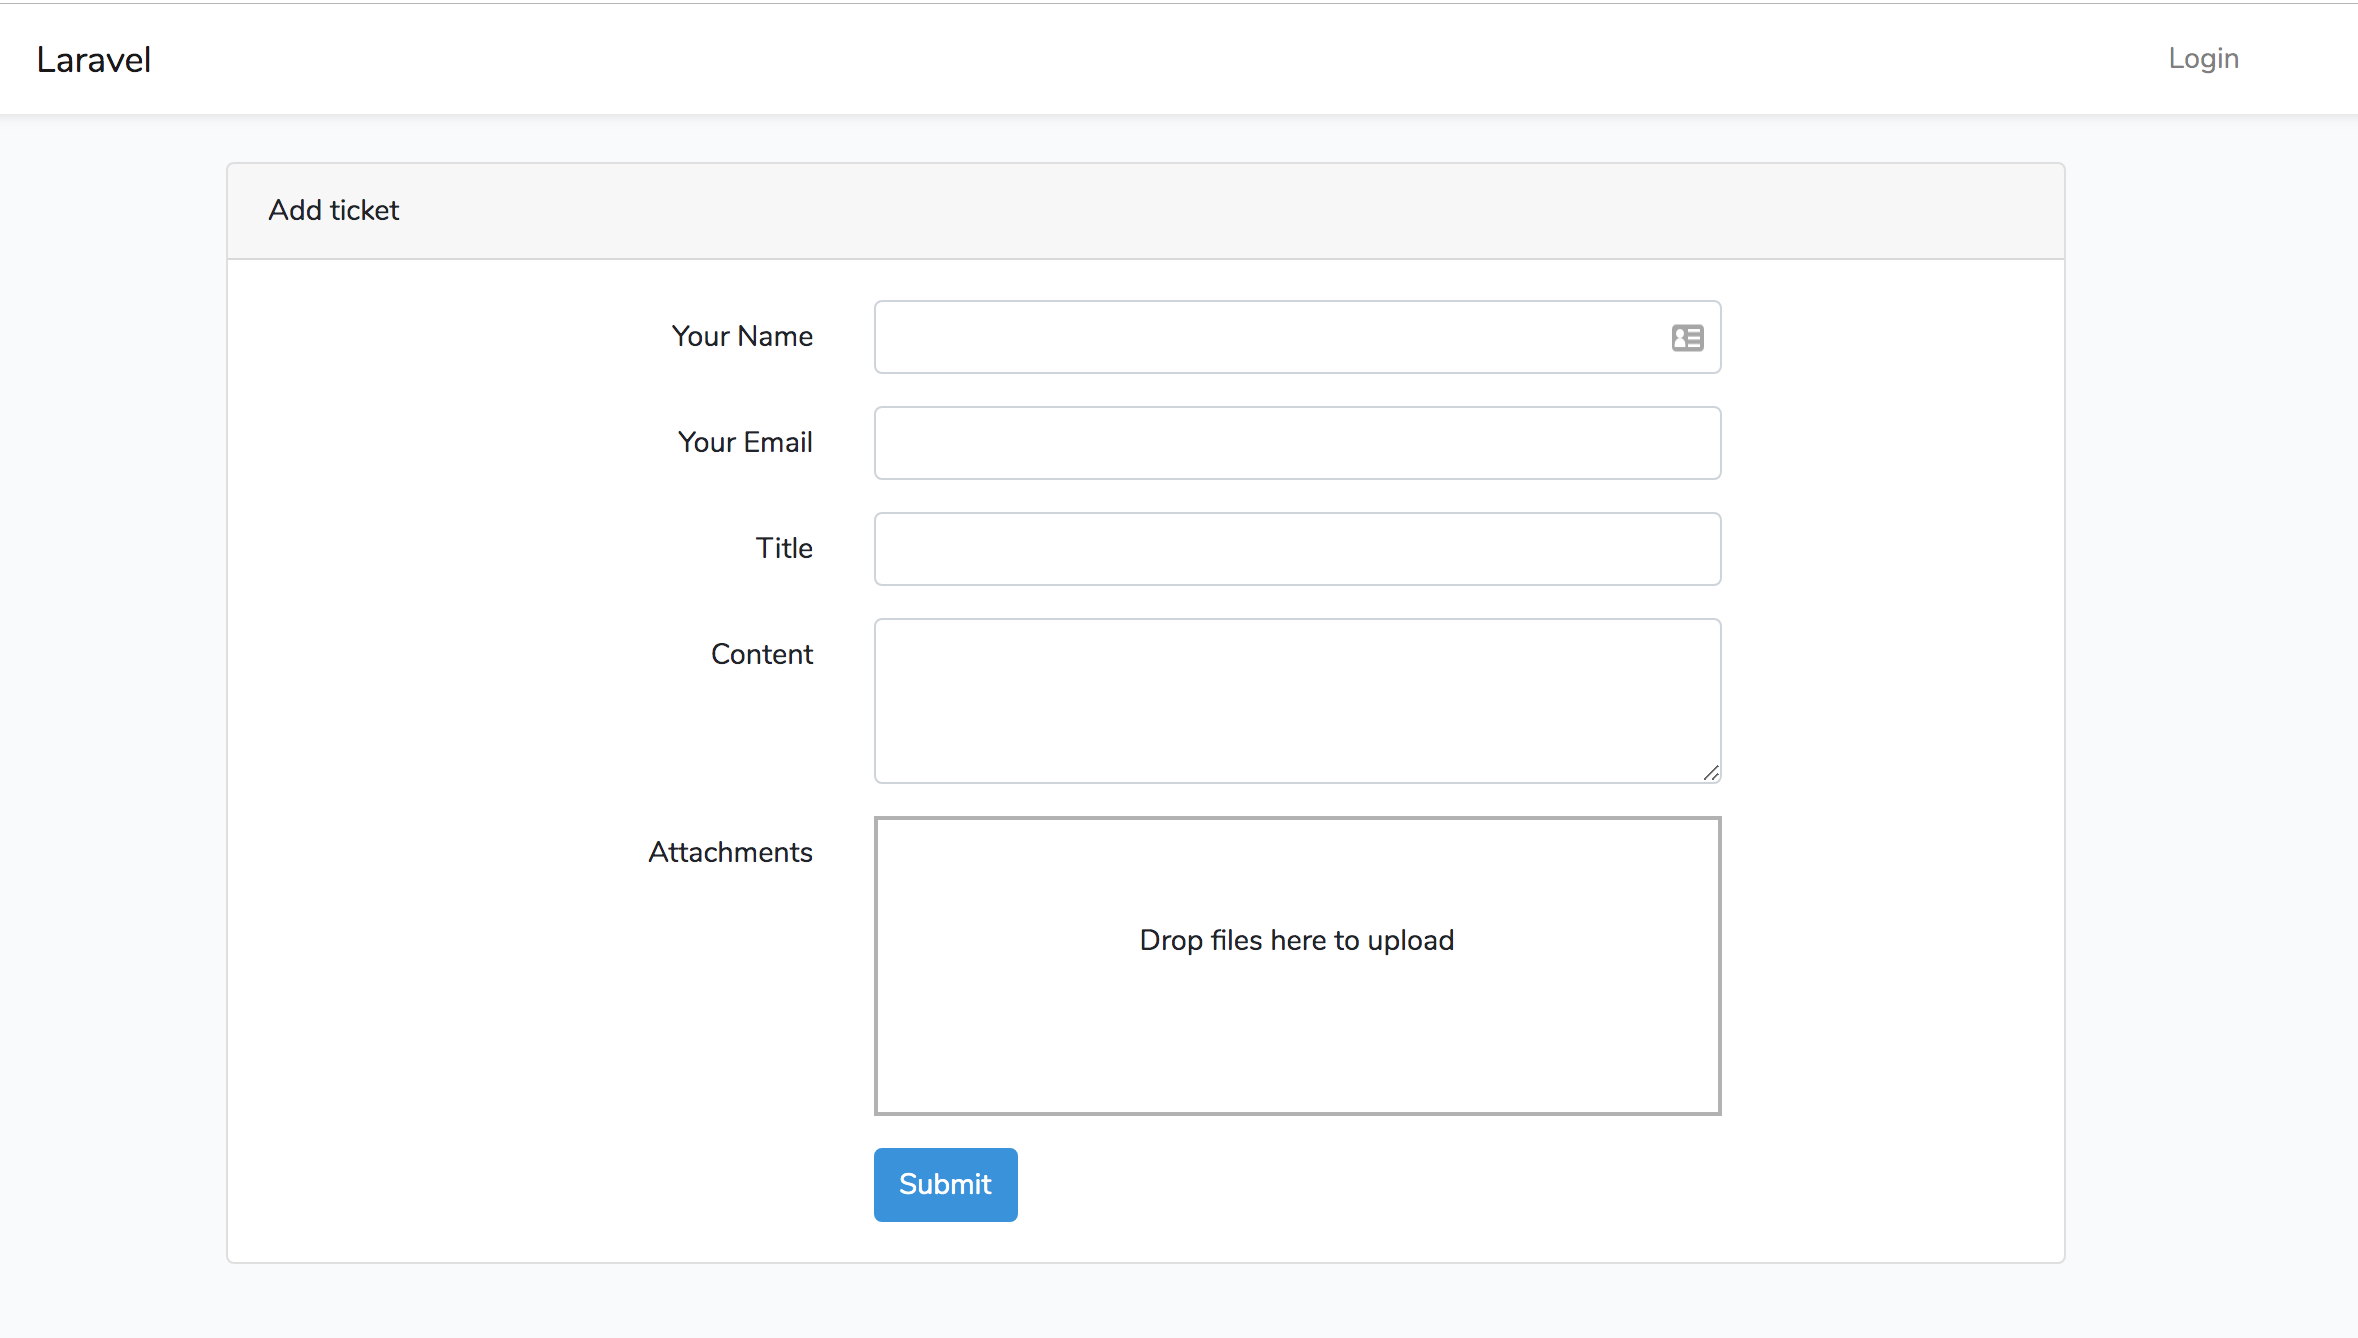 Laravel Helpdesk New Ticket